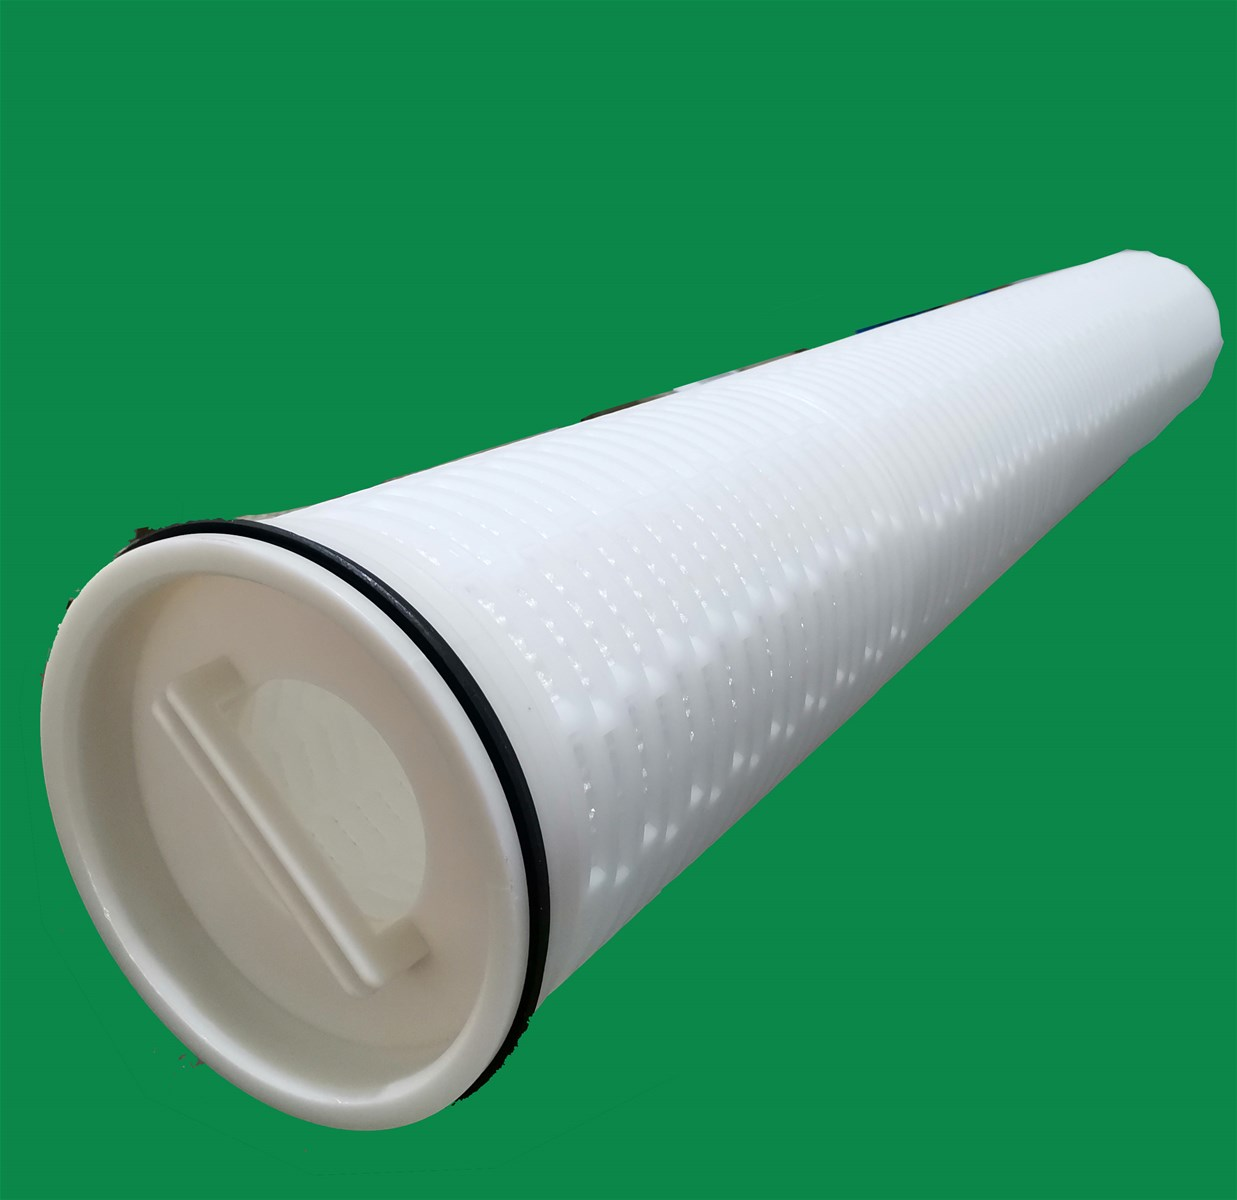 Pleated High Flow Filter Cartridge for Desalinization of Seawater